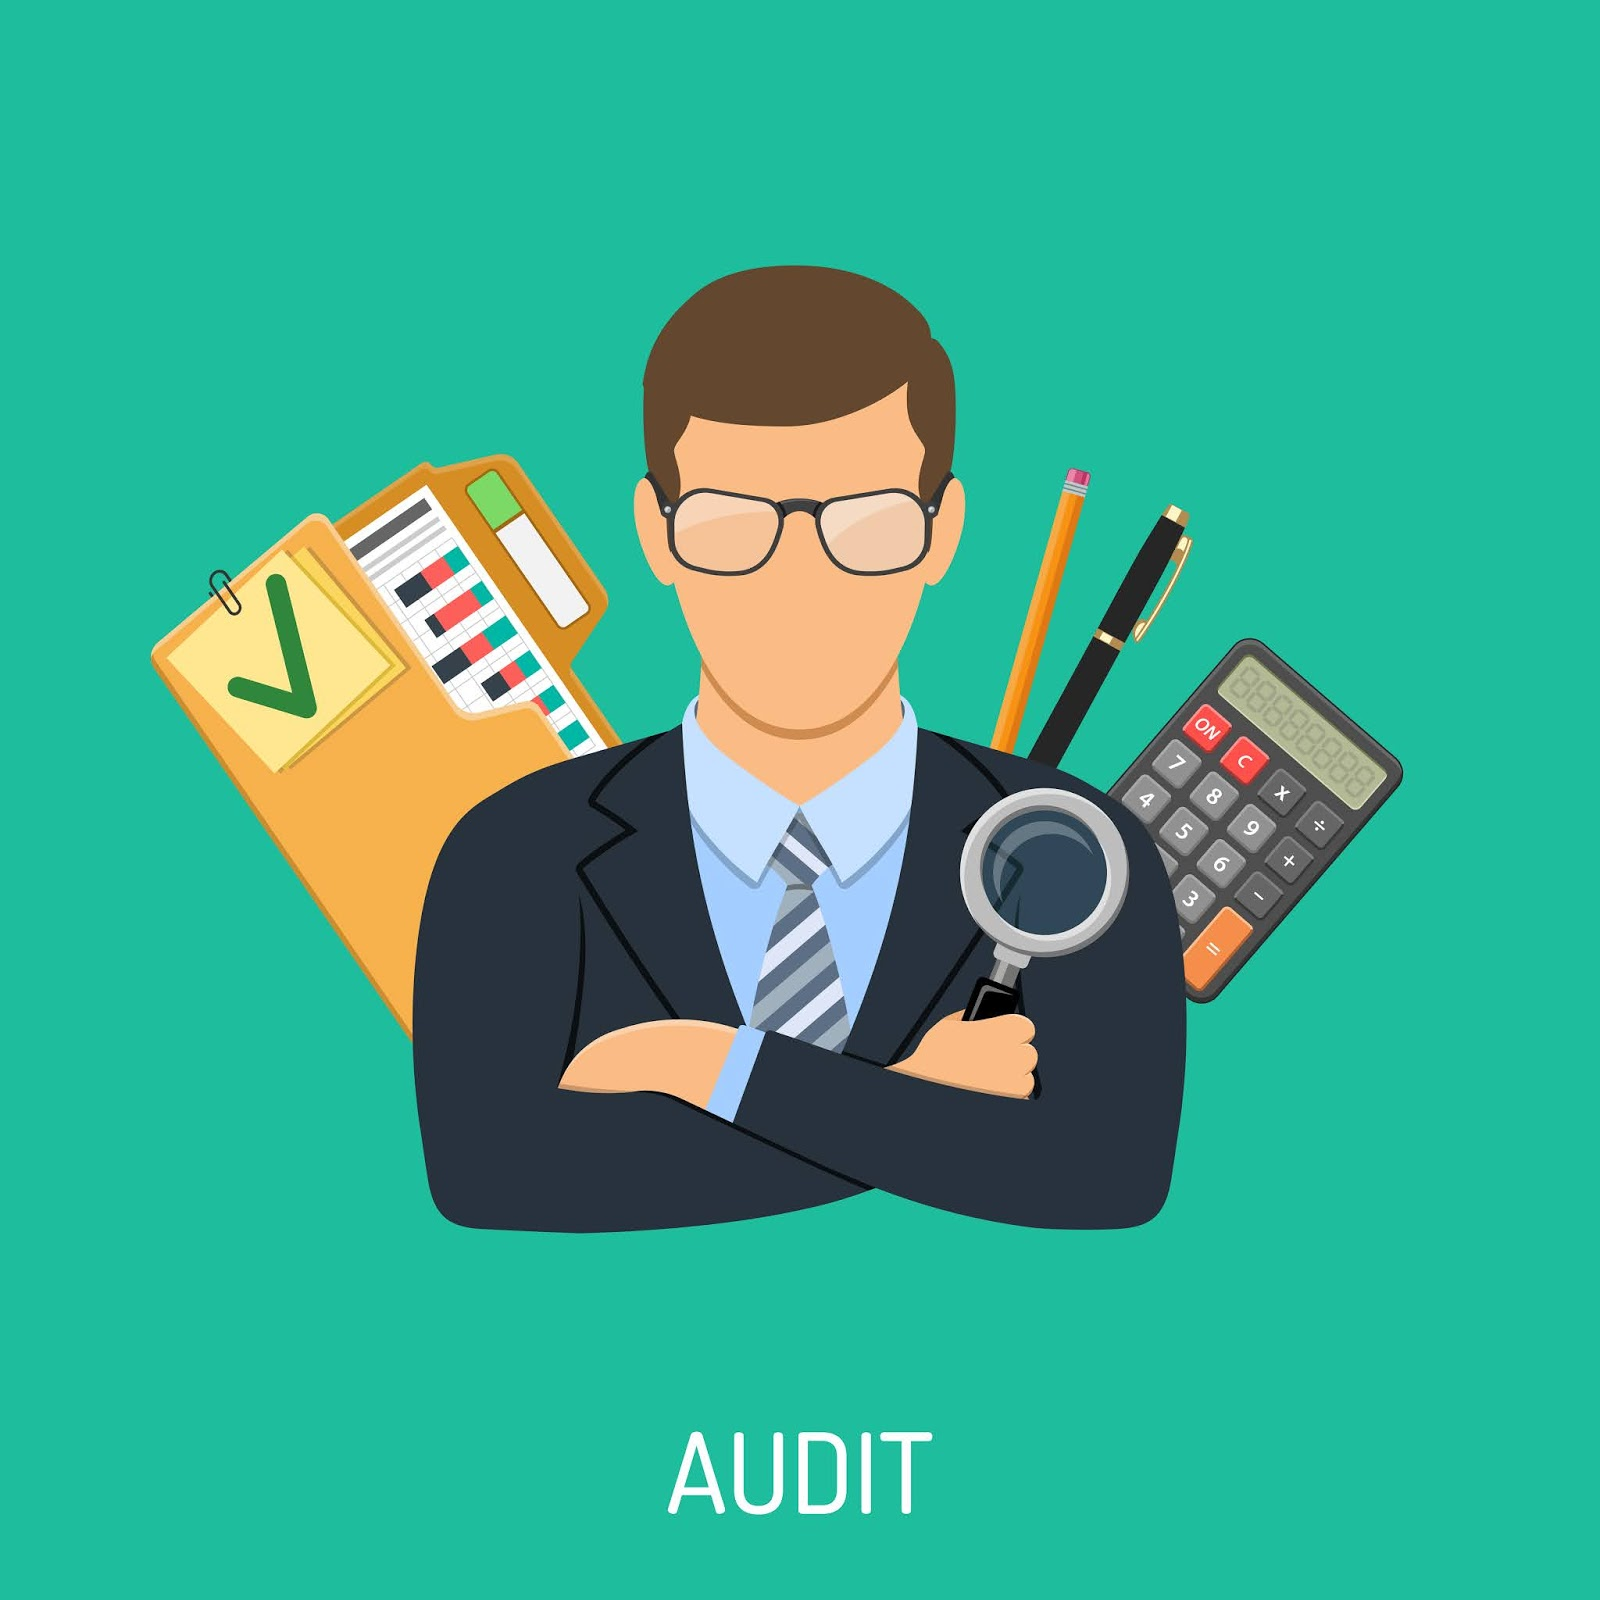 Auditor Accounting Concept Free Download Vector CDR, AI, EPS and PNG Formats